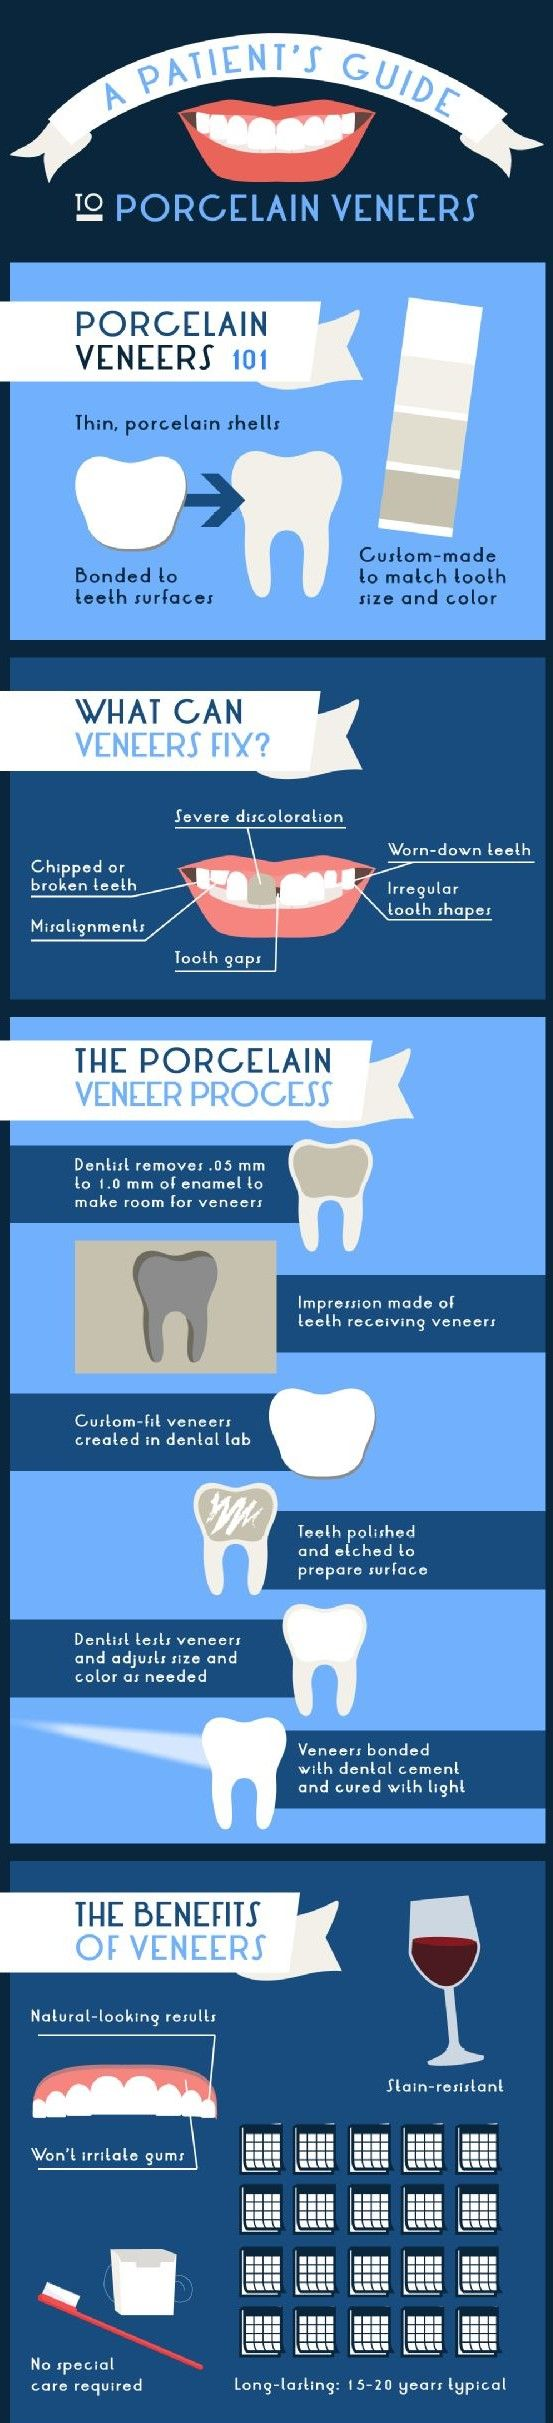 Improve not only your smile but your gums as well when you get porcelain veneers installed!